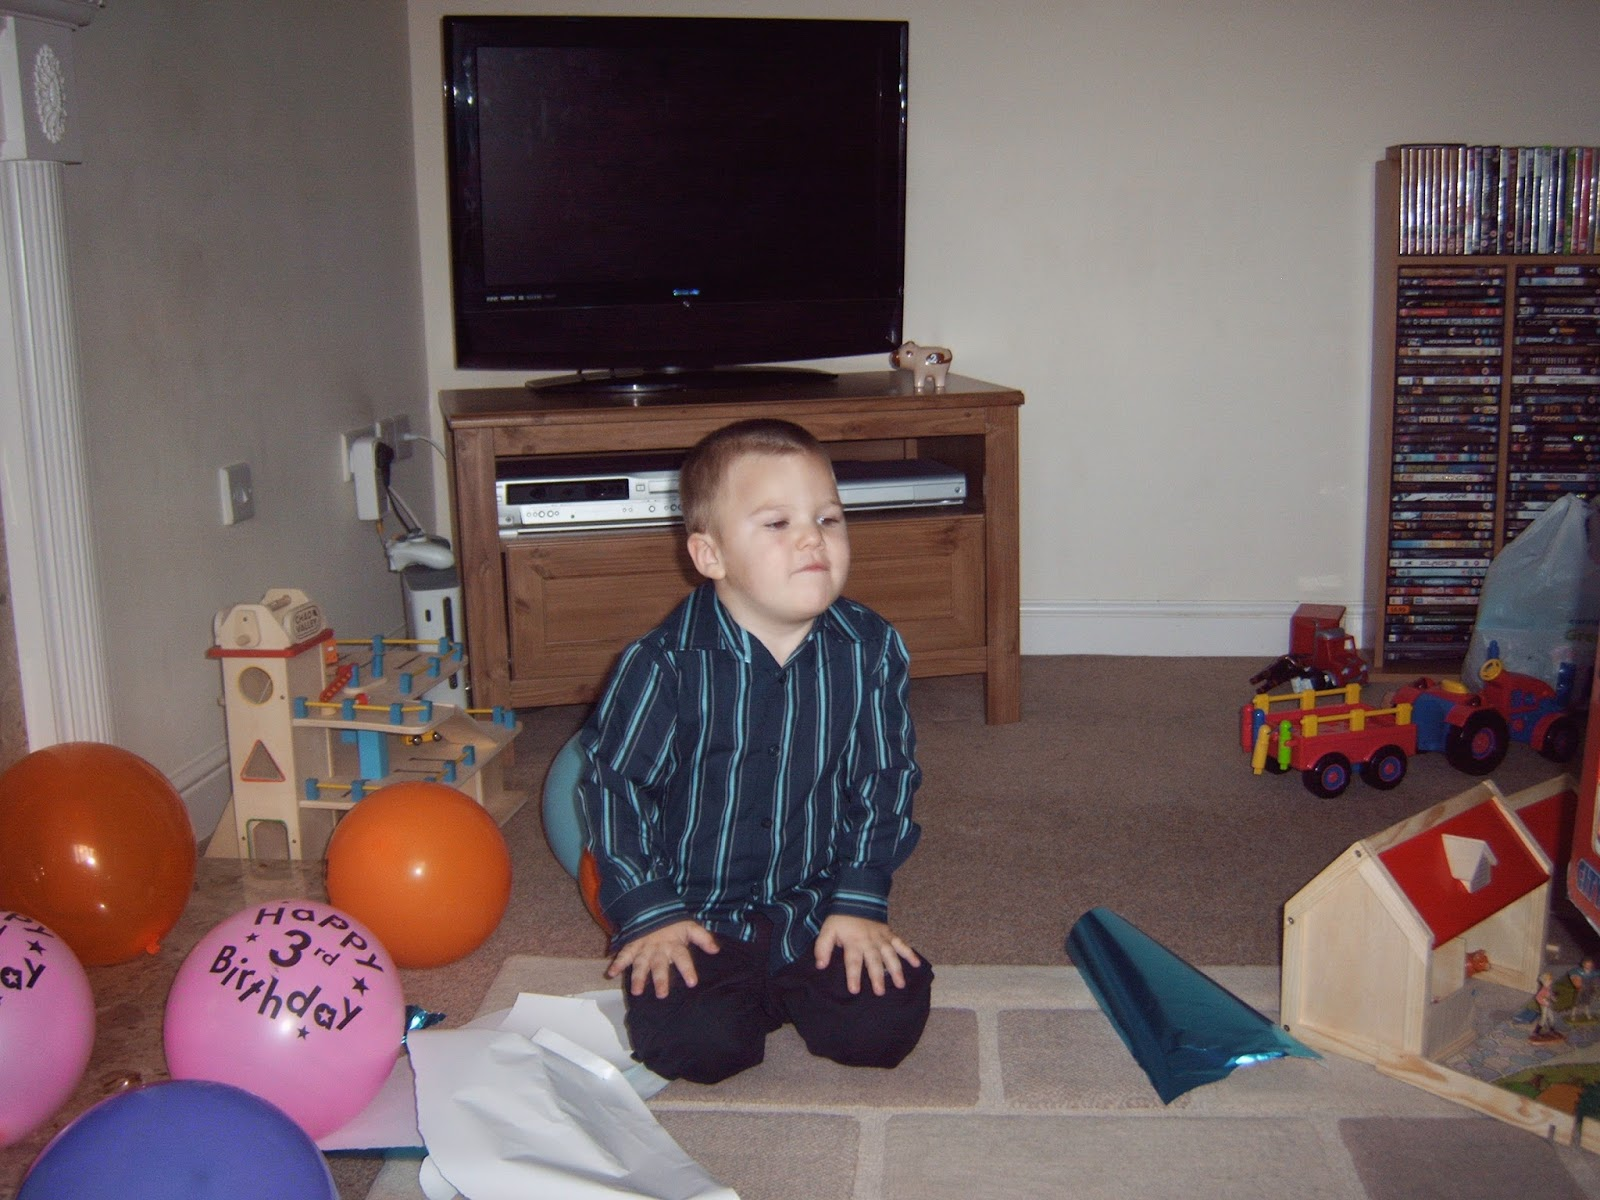 Ben on his 3rd birthday kneeling on the floor surrounded by presents and balloons